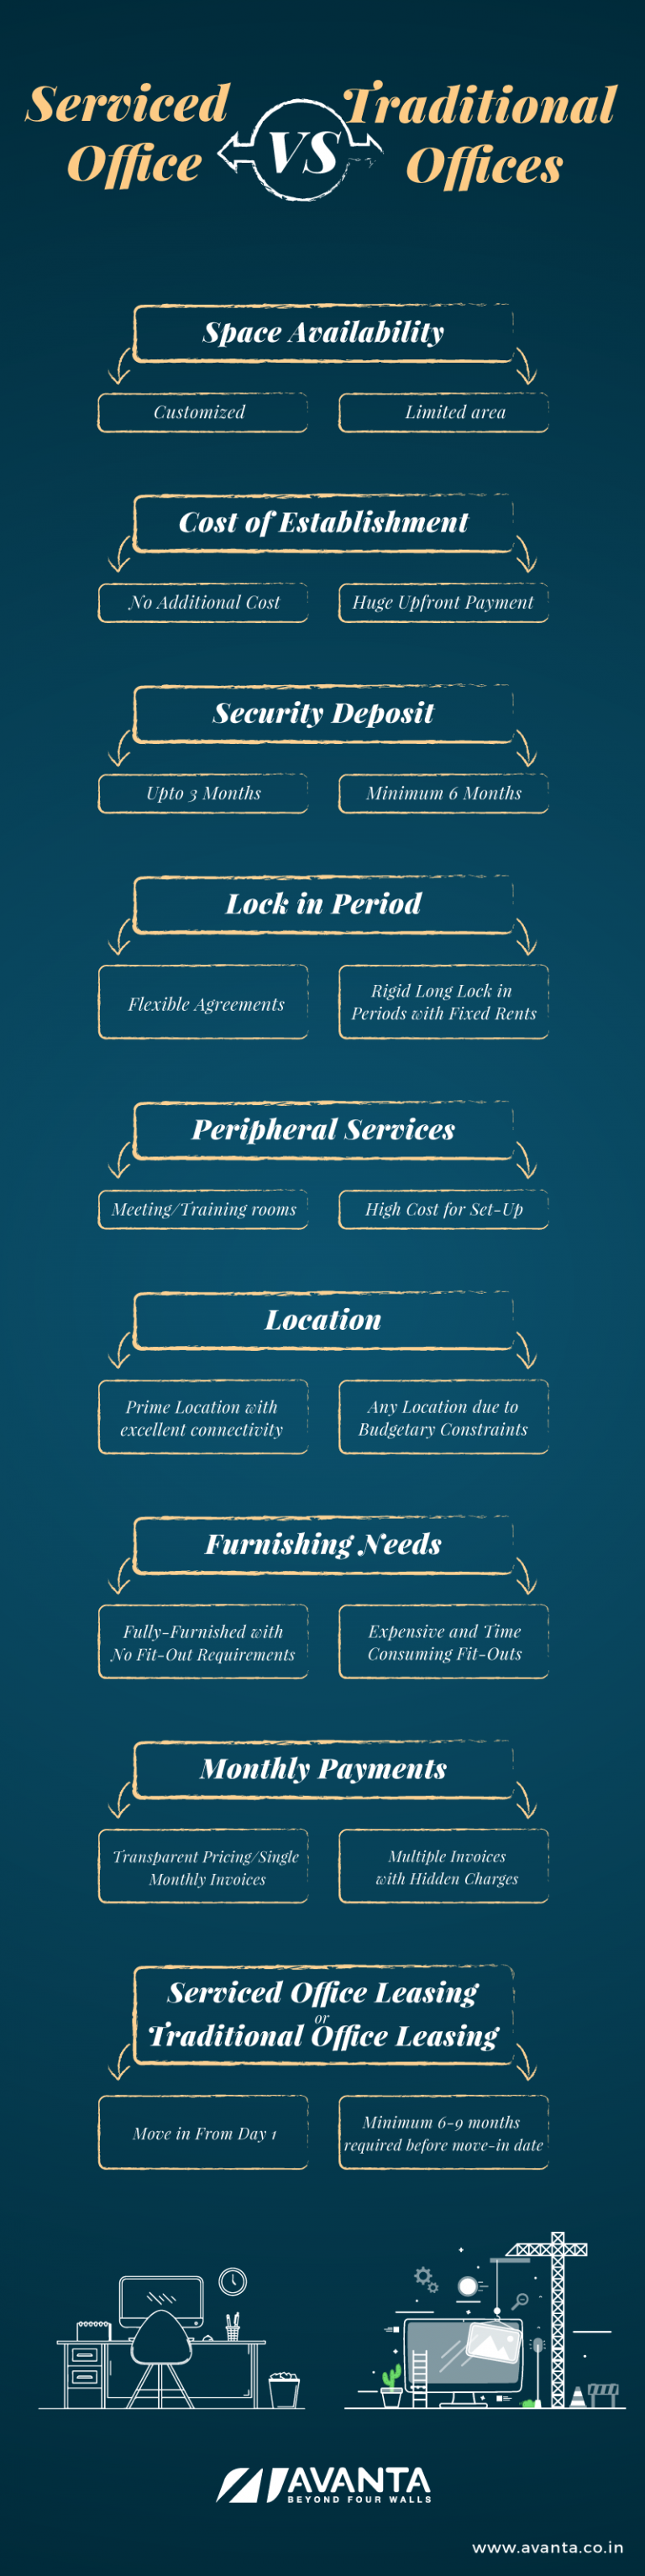 Serviced Offices Vs. Traditional Offices – An Info-graphic